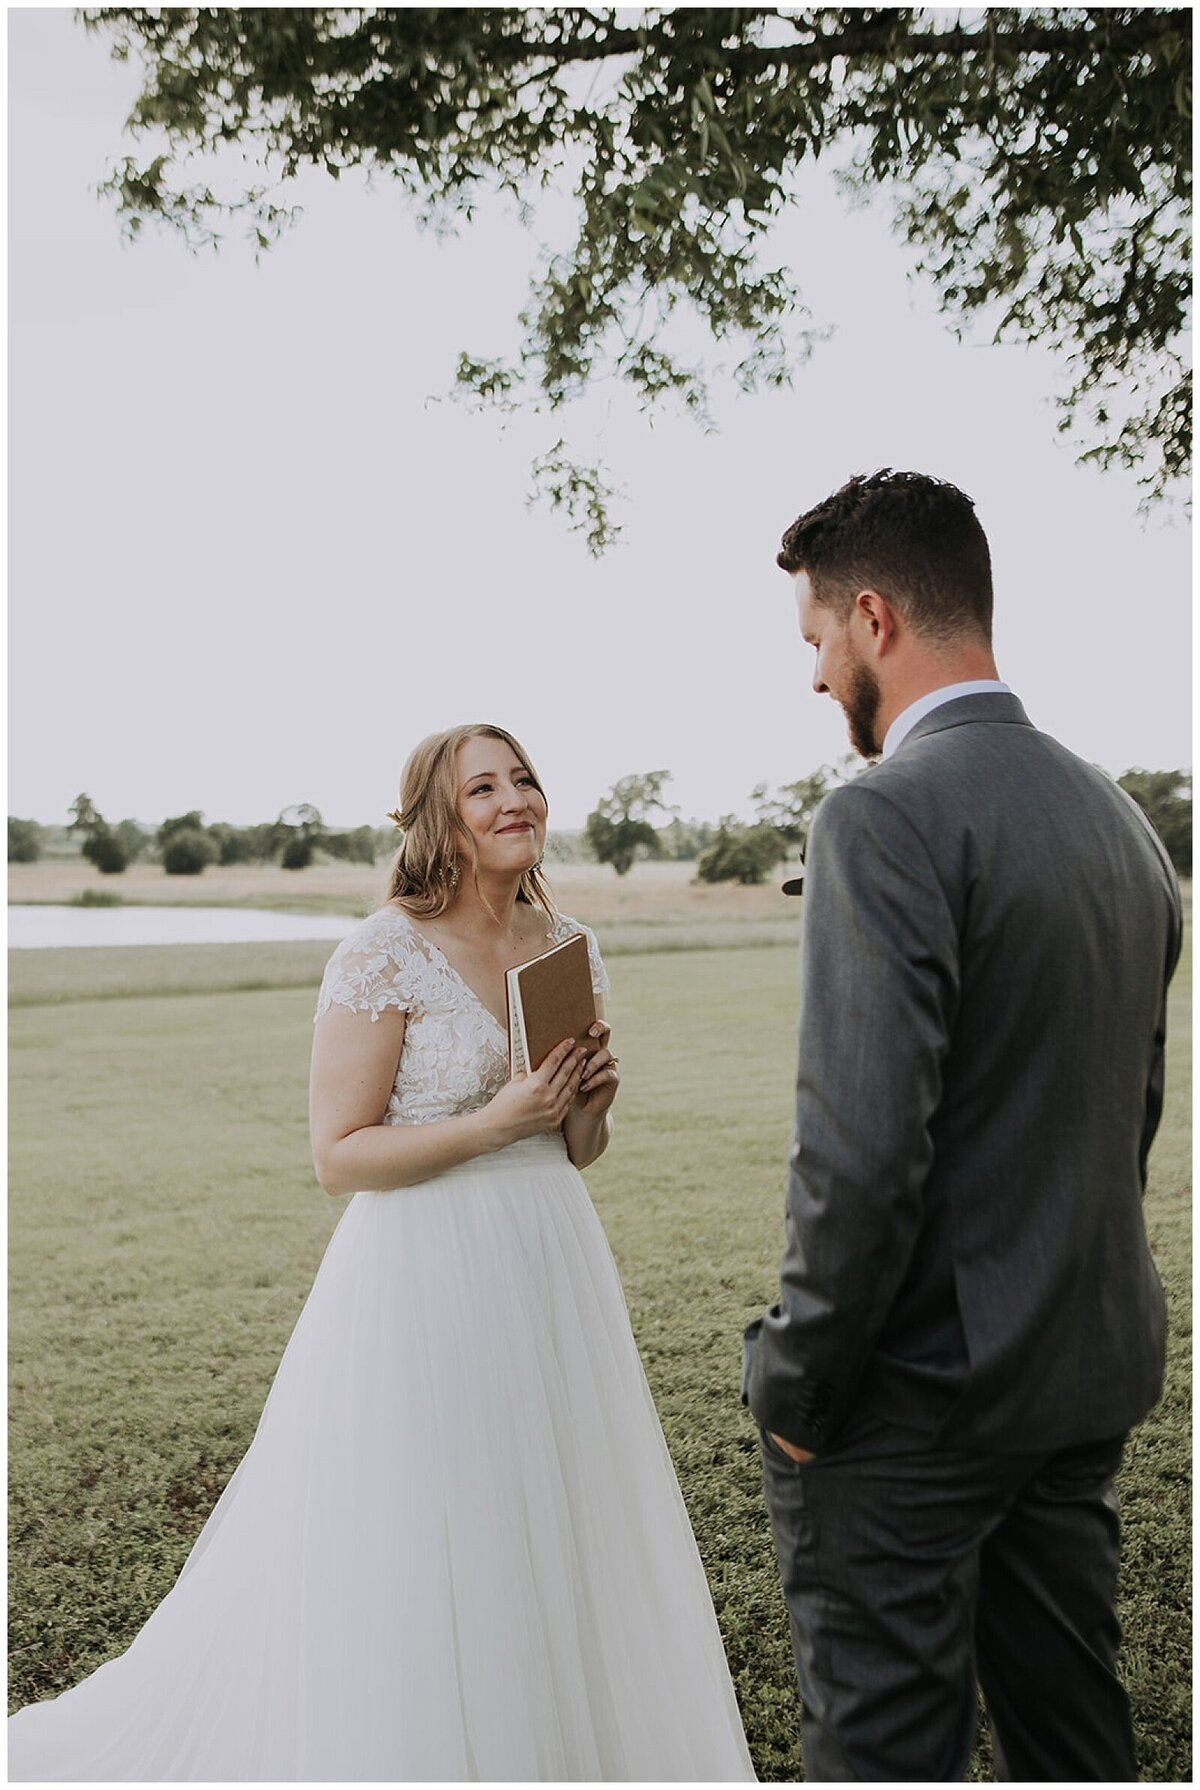 Modern Farmhouse Wedding with Organic details at Emery's Buffalo Creek - Houston Wedding Venue_0619